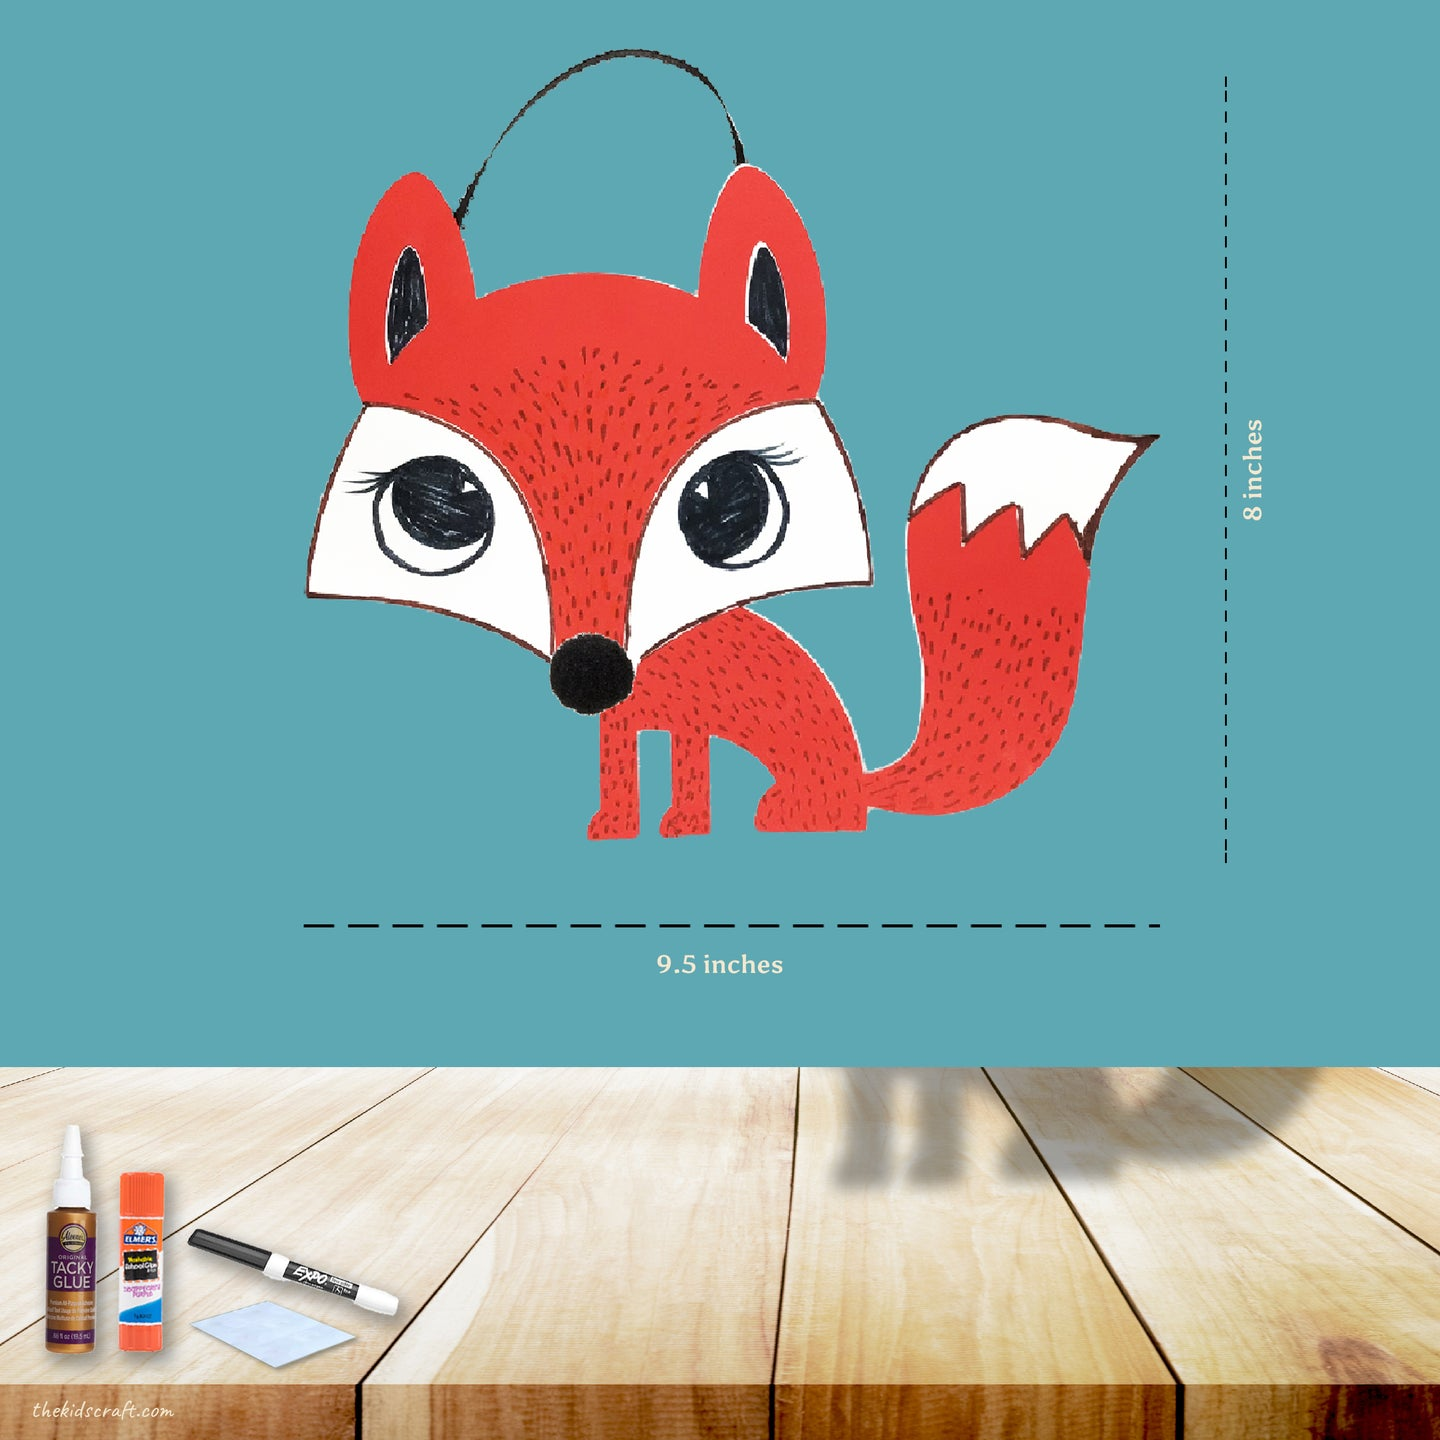 The Clever Little Fox DIY Craft Kit (Pack of 1, 6 or 12 kits)